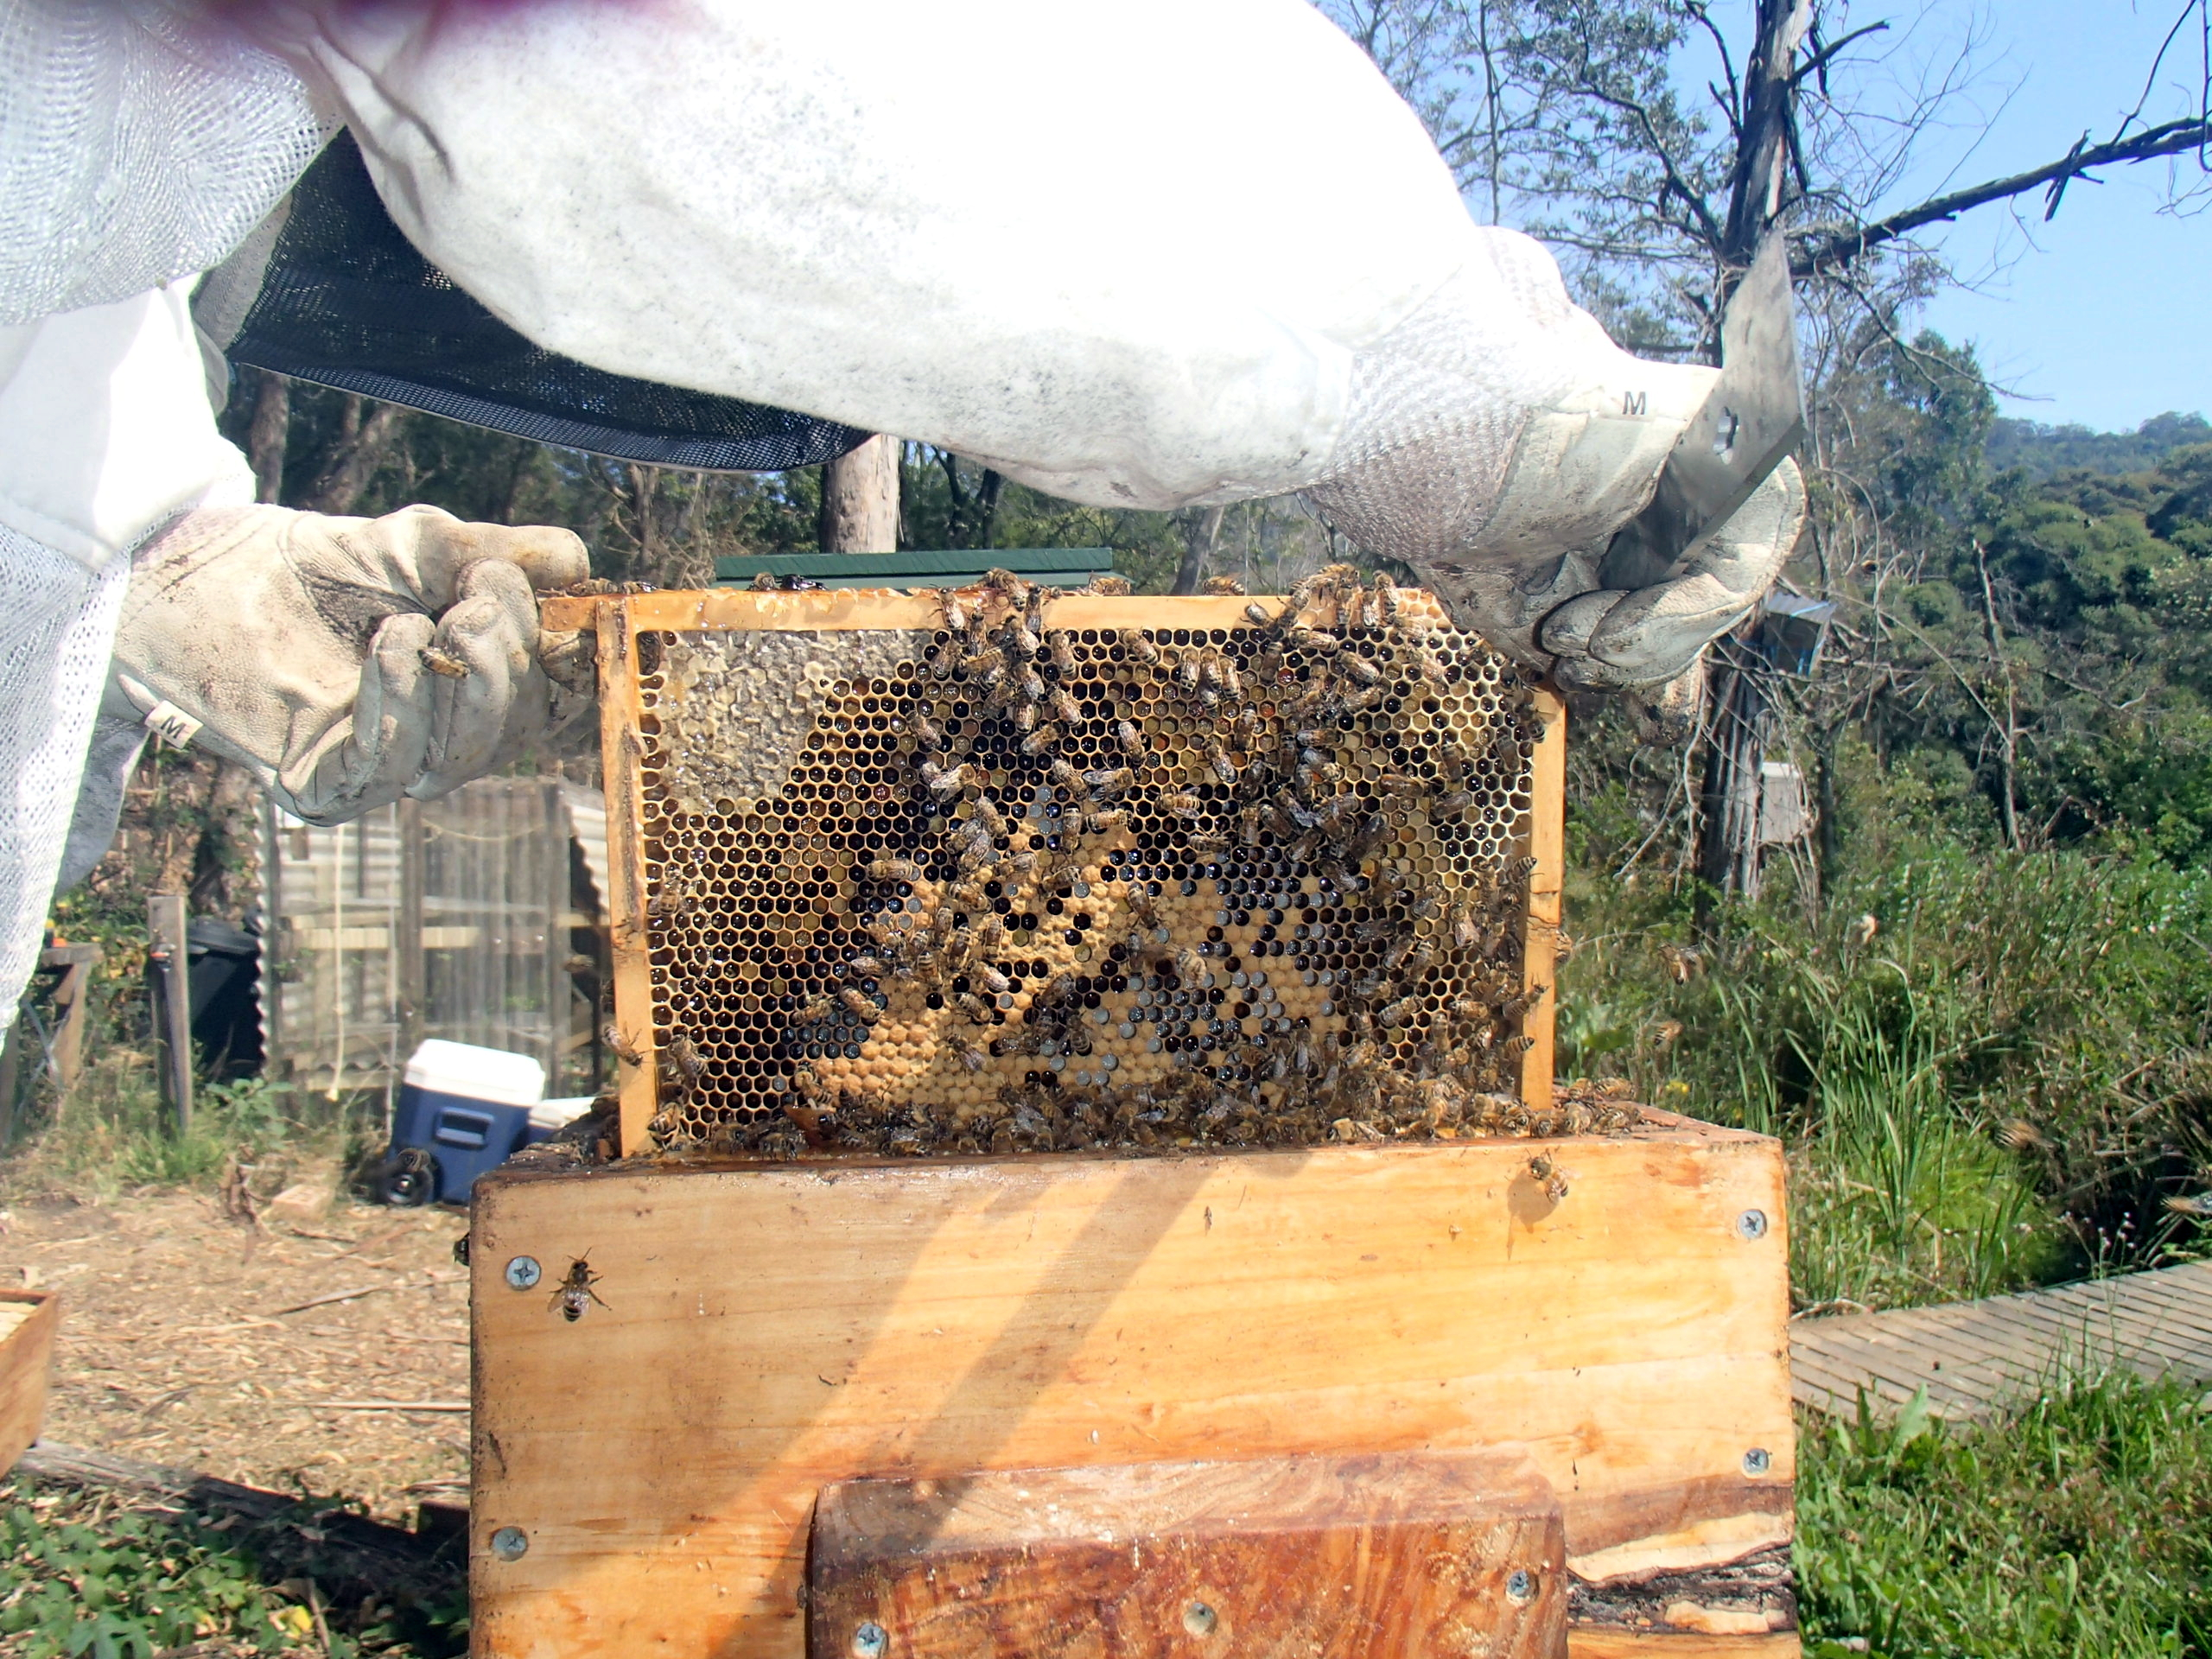 Backyard beekeeping and bees with a personality